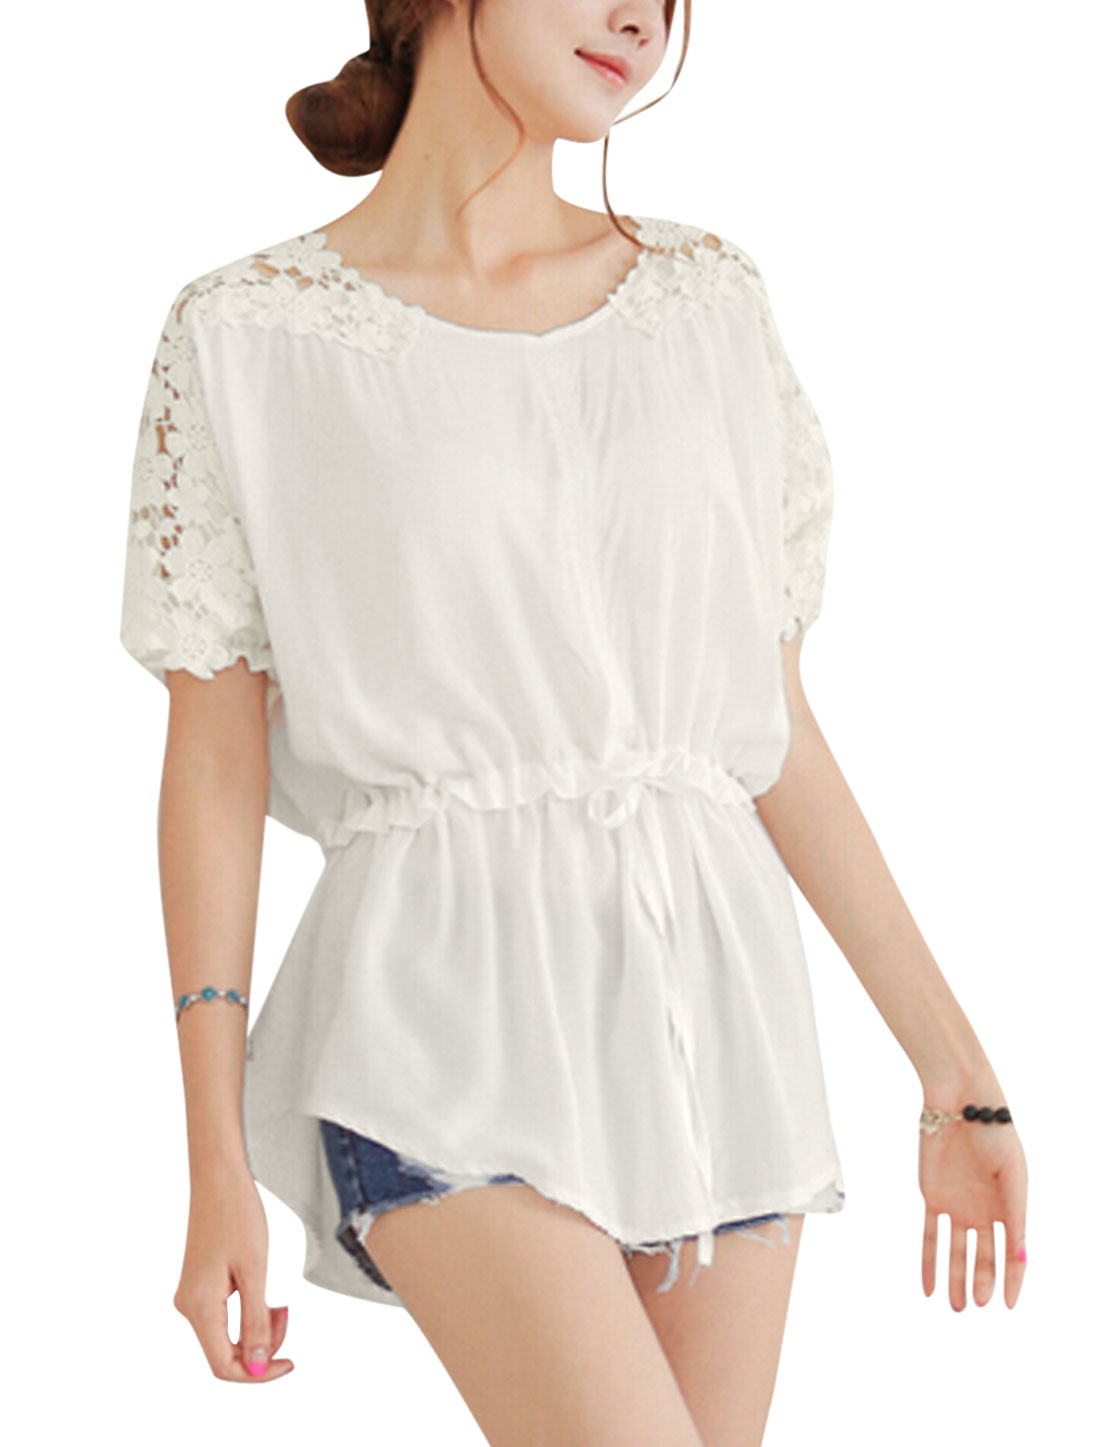 Lady Short Batwing Sleeve Crochet Panel Drawstring Waist Blouse White S